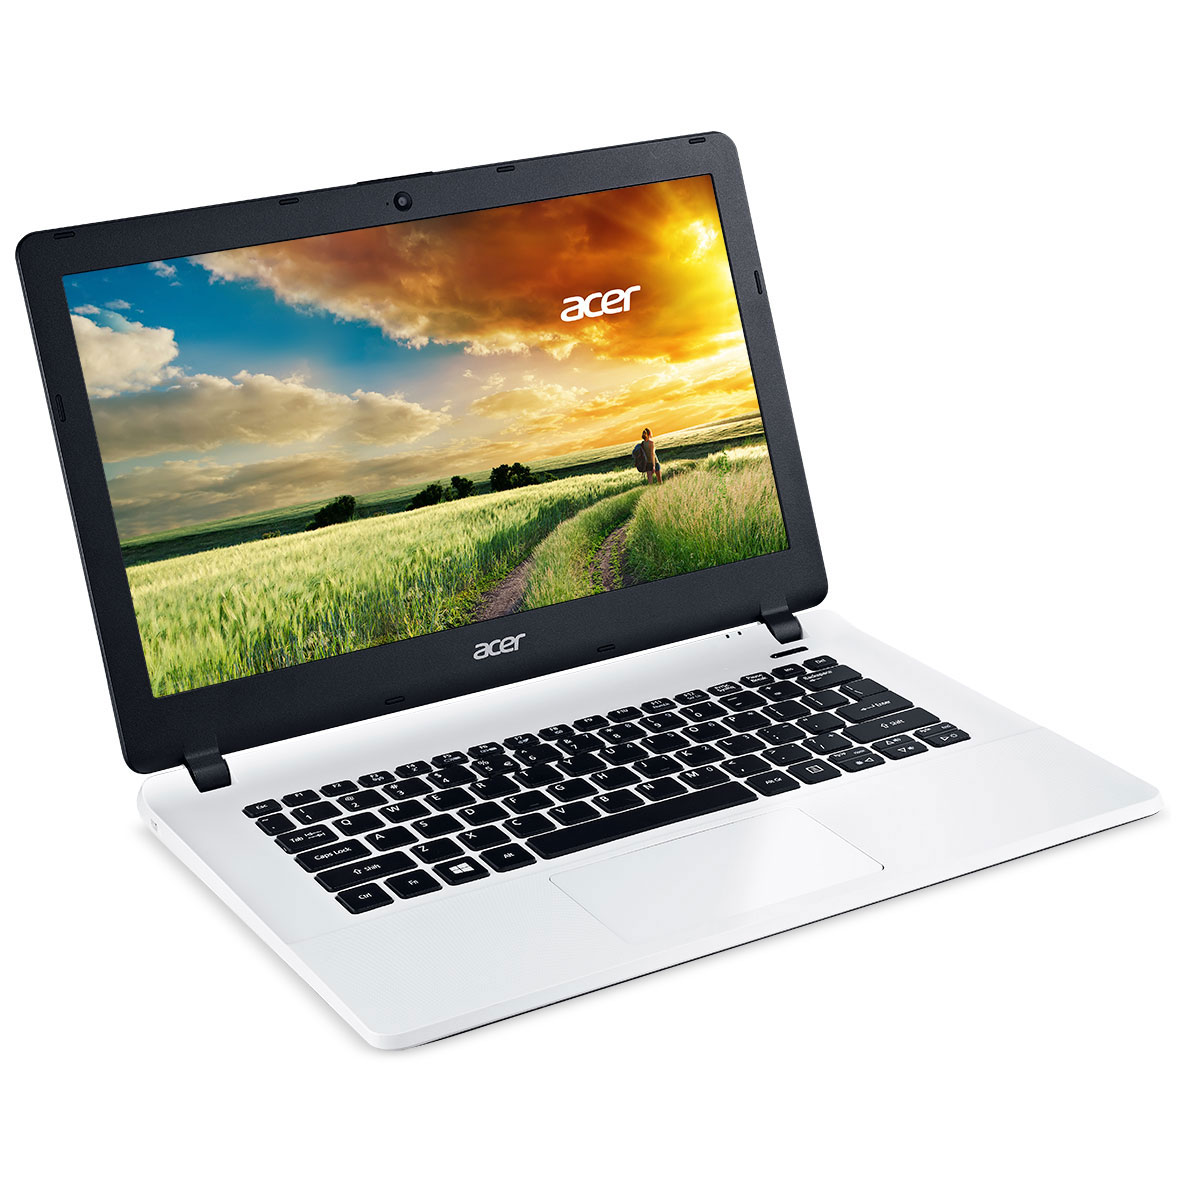 acer aspire es1 331 c0p4 pc portable acer sur. Black Bedroom Furniture Sets. Home Design Ideas